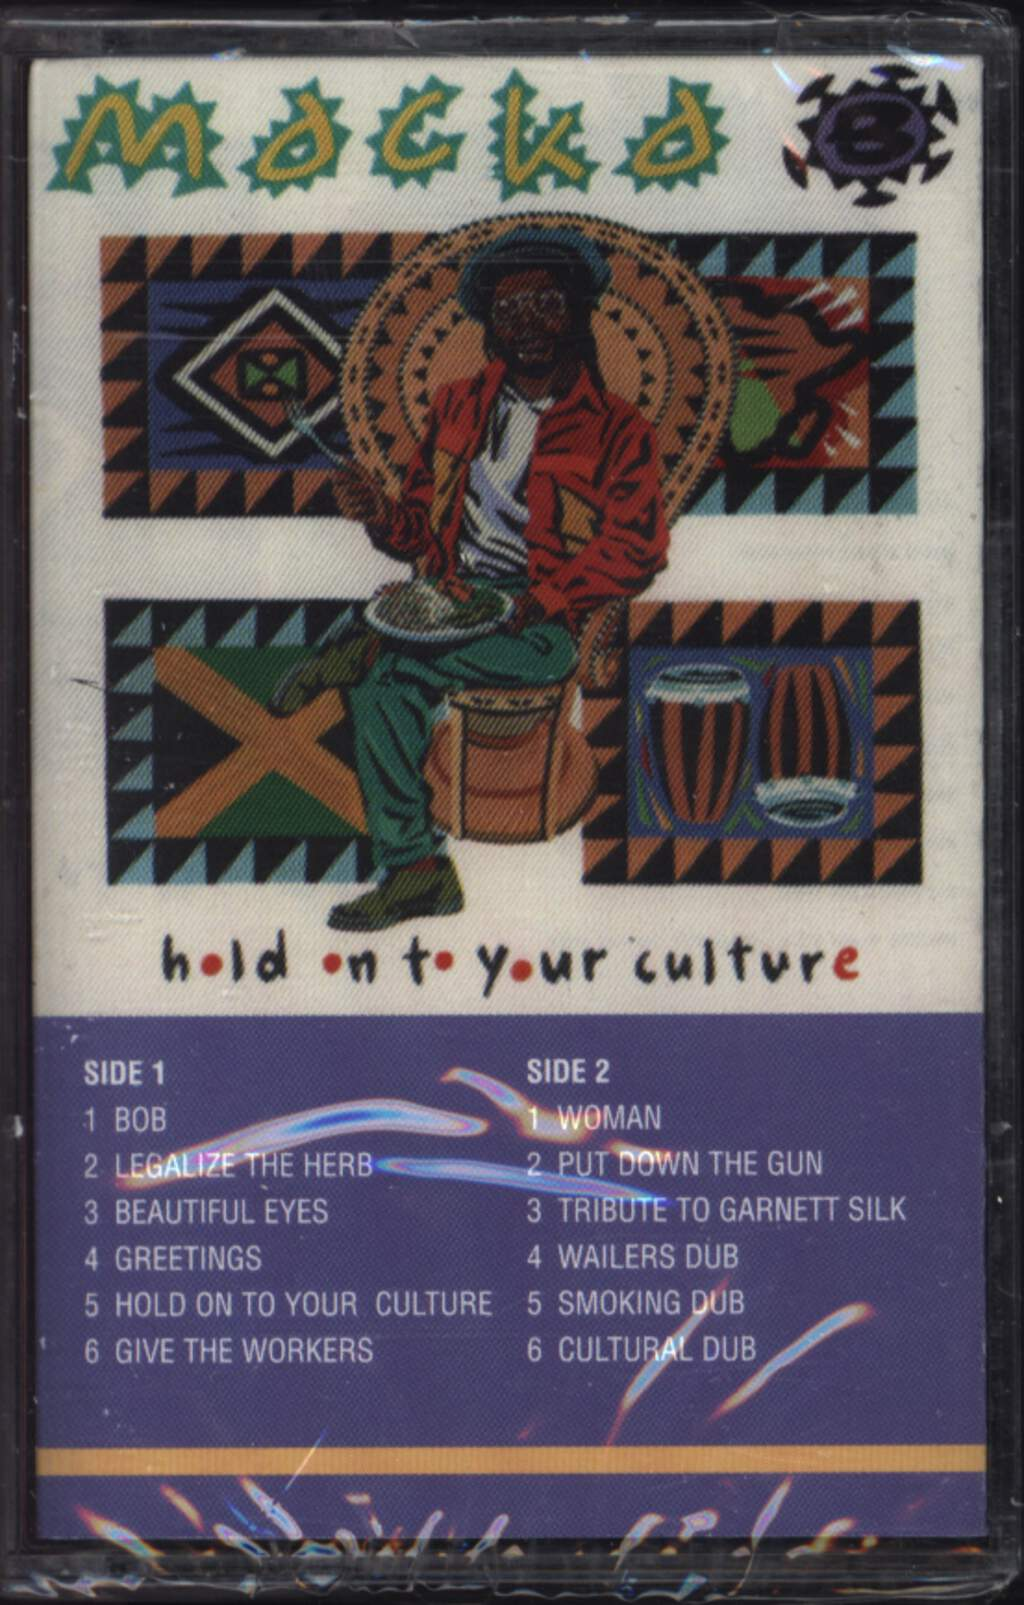 Macka B: Hold On To Your Culture, Compact Cassette